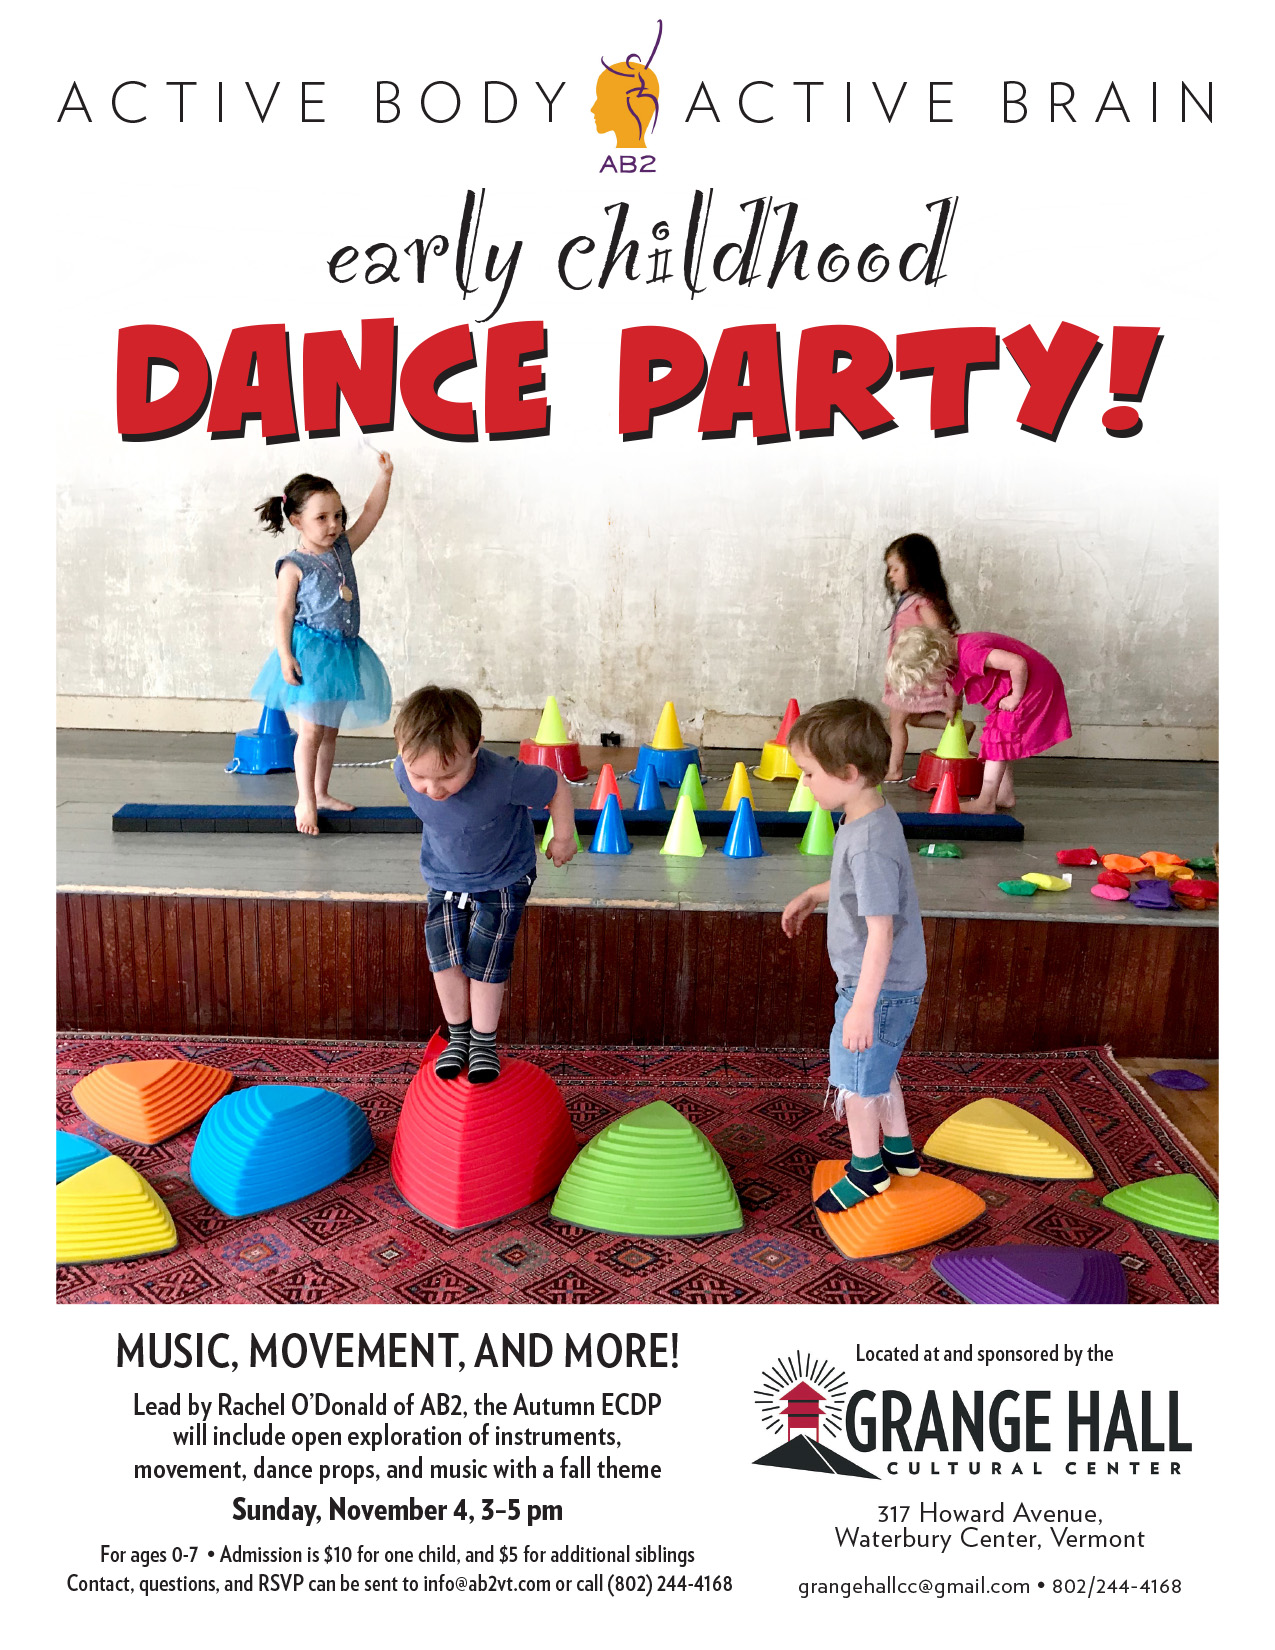 AB2 Dance Party Poster.jpg